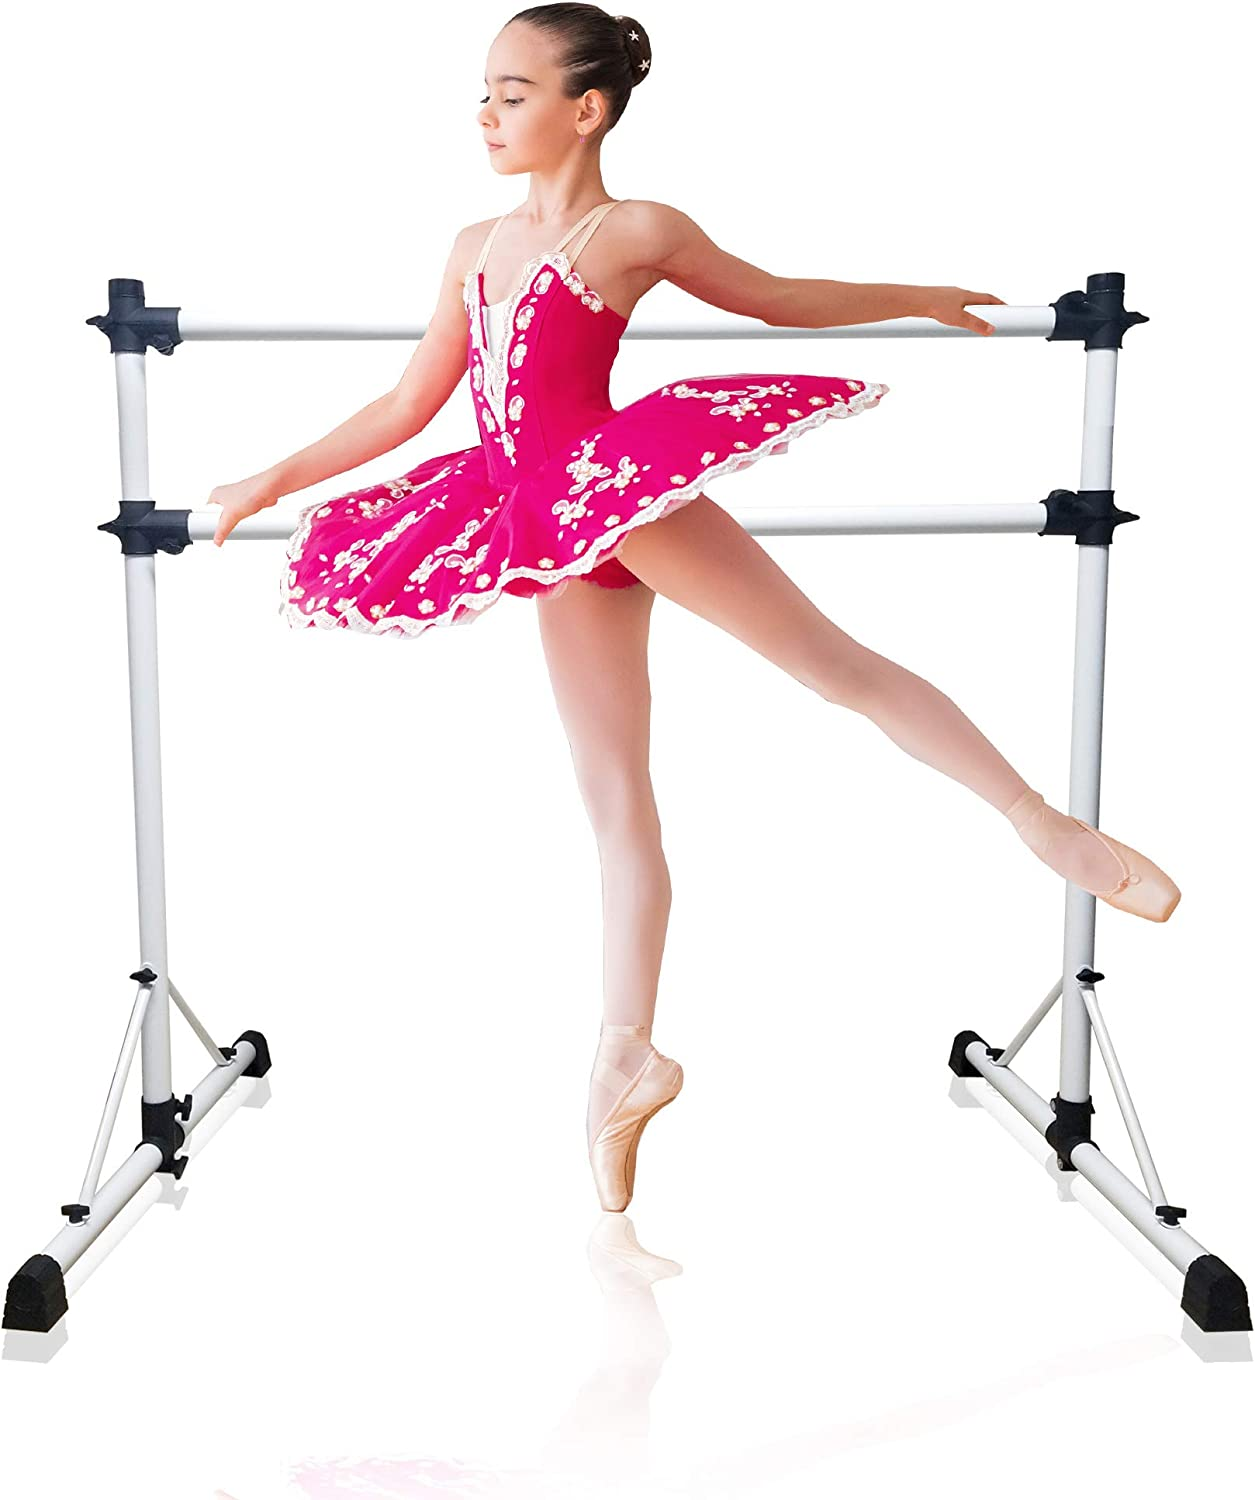 New and Improved 4 Ft Steel Double Ballet Barre with Carry Bag and Beginner Guide, Adjustable and Portable ballet barre for home and gym, Quality Ballet bar anti-wobble, stretching dance bar